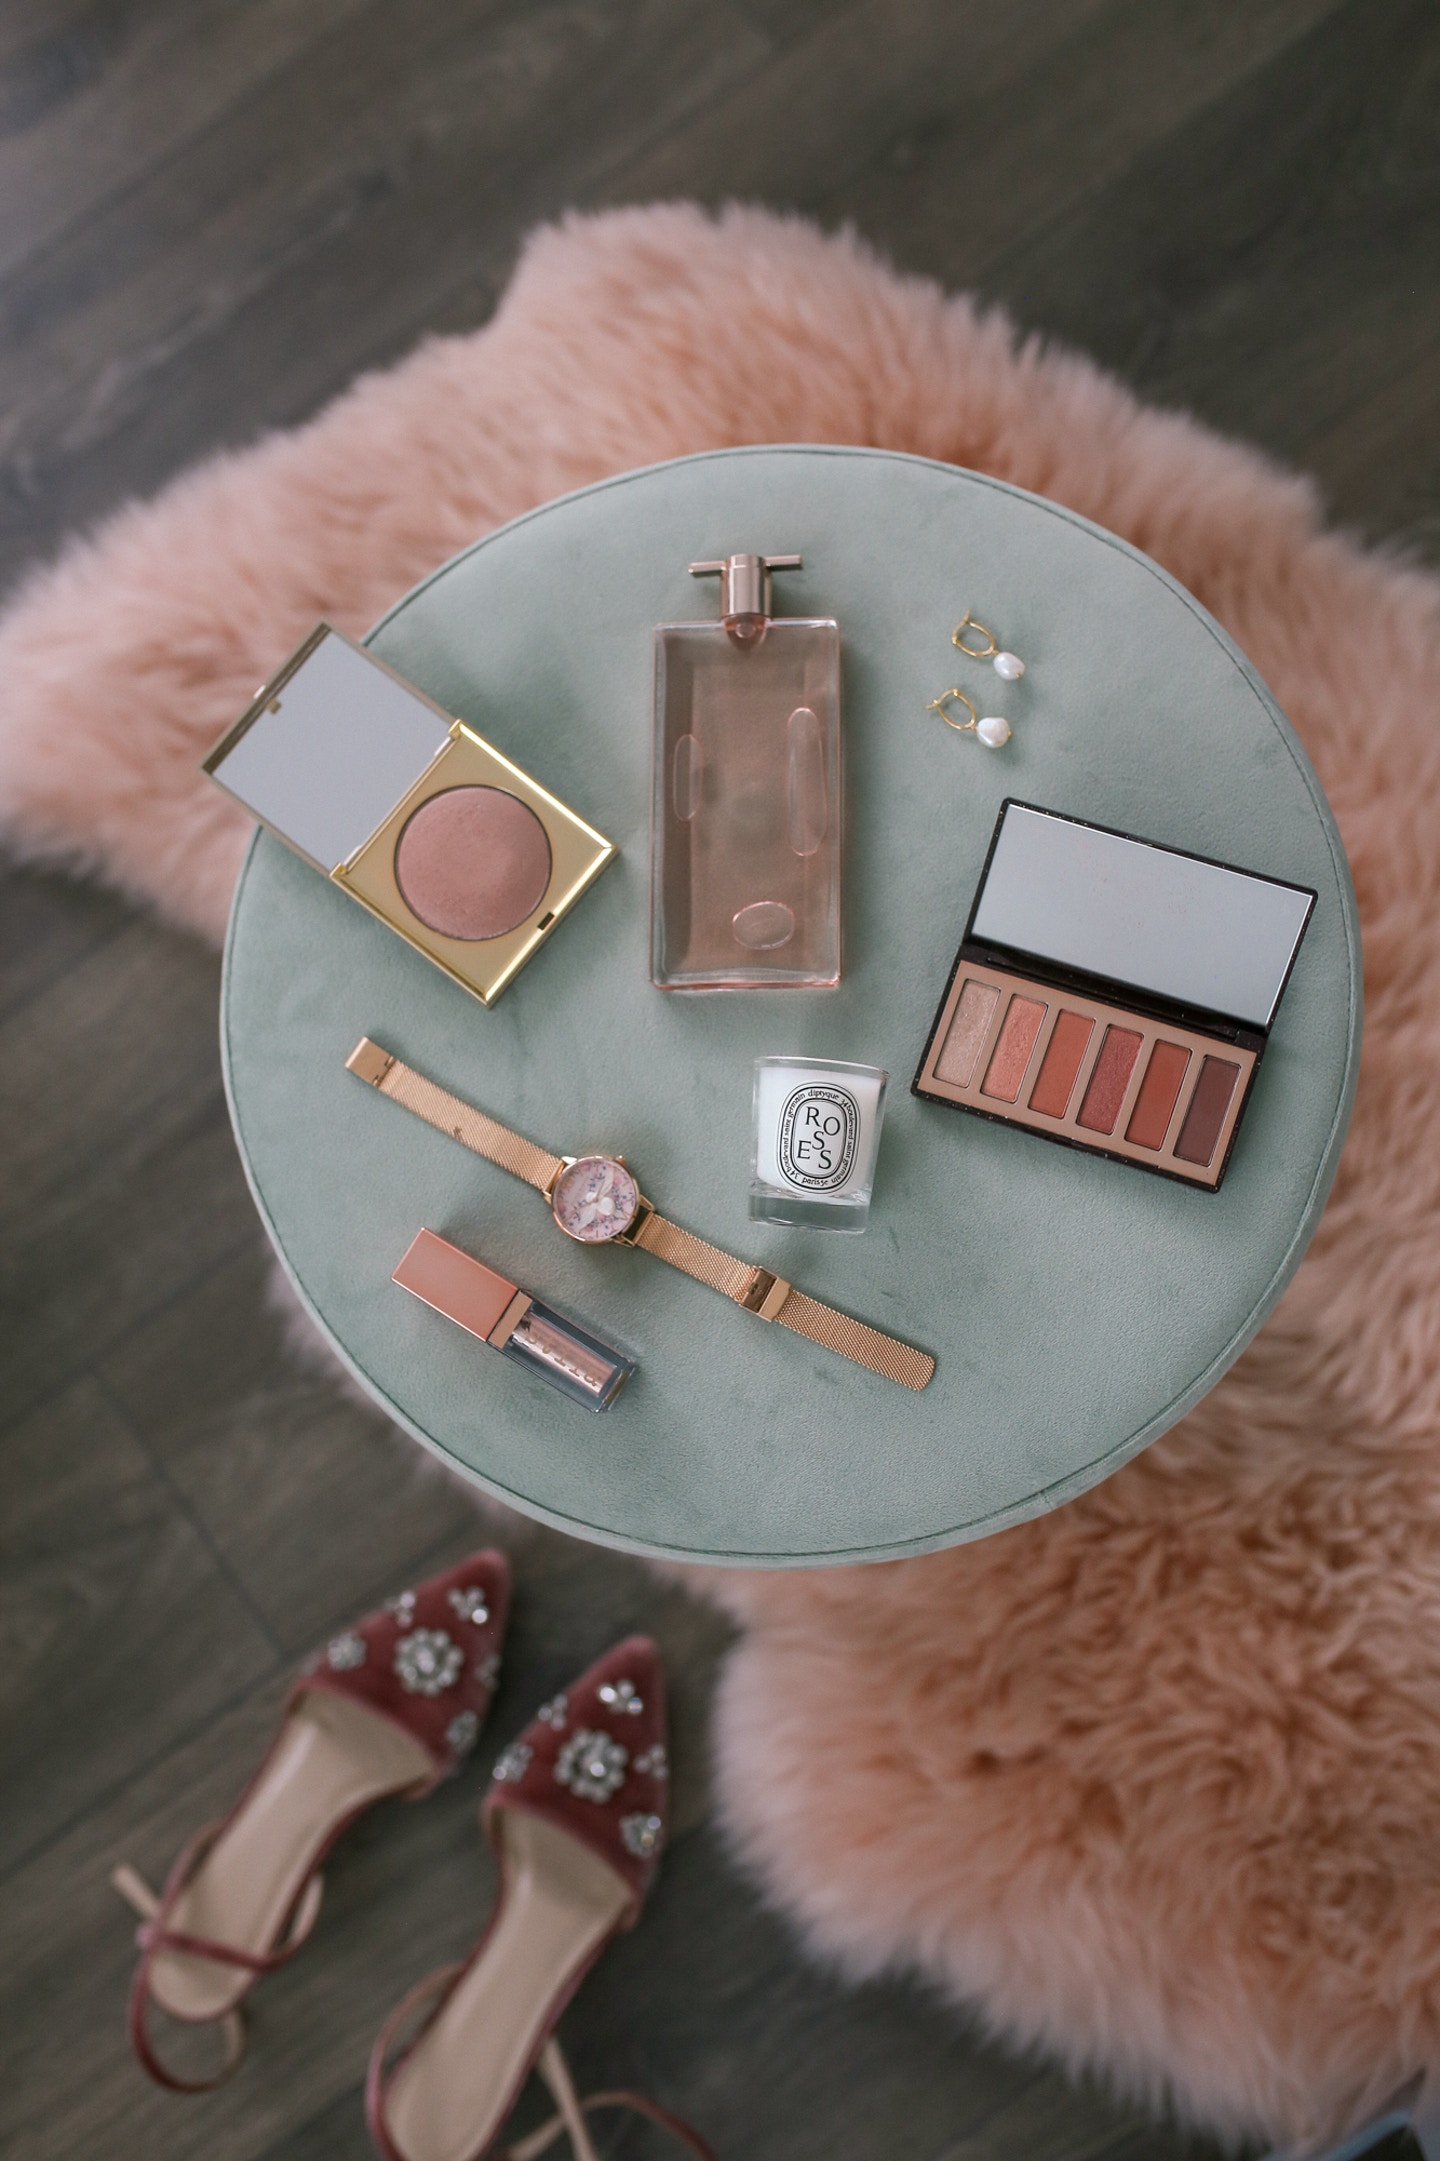 Valentine's Day Gift Ideas: From pretty Charlotte Tilbury eyeshadow to sumptuous fragrance or pearl earrings, my gift ideas are perfect at any price point!